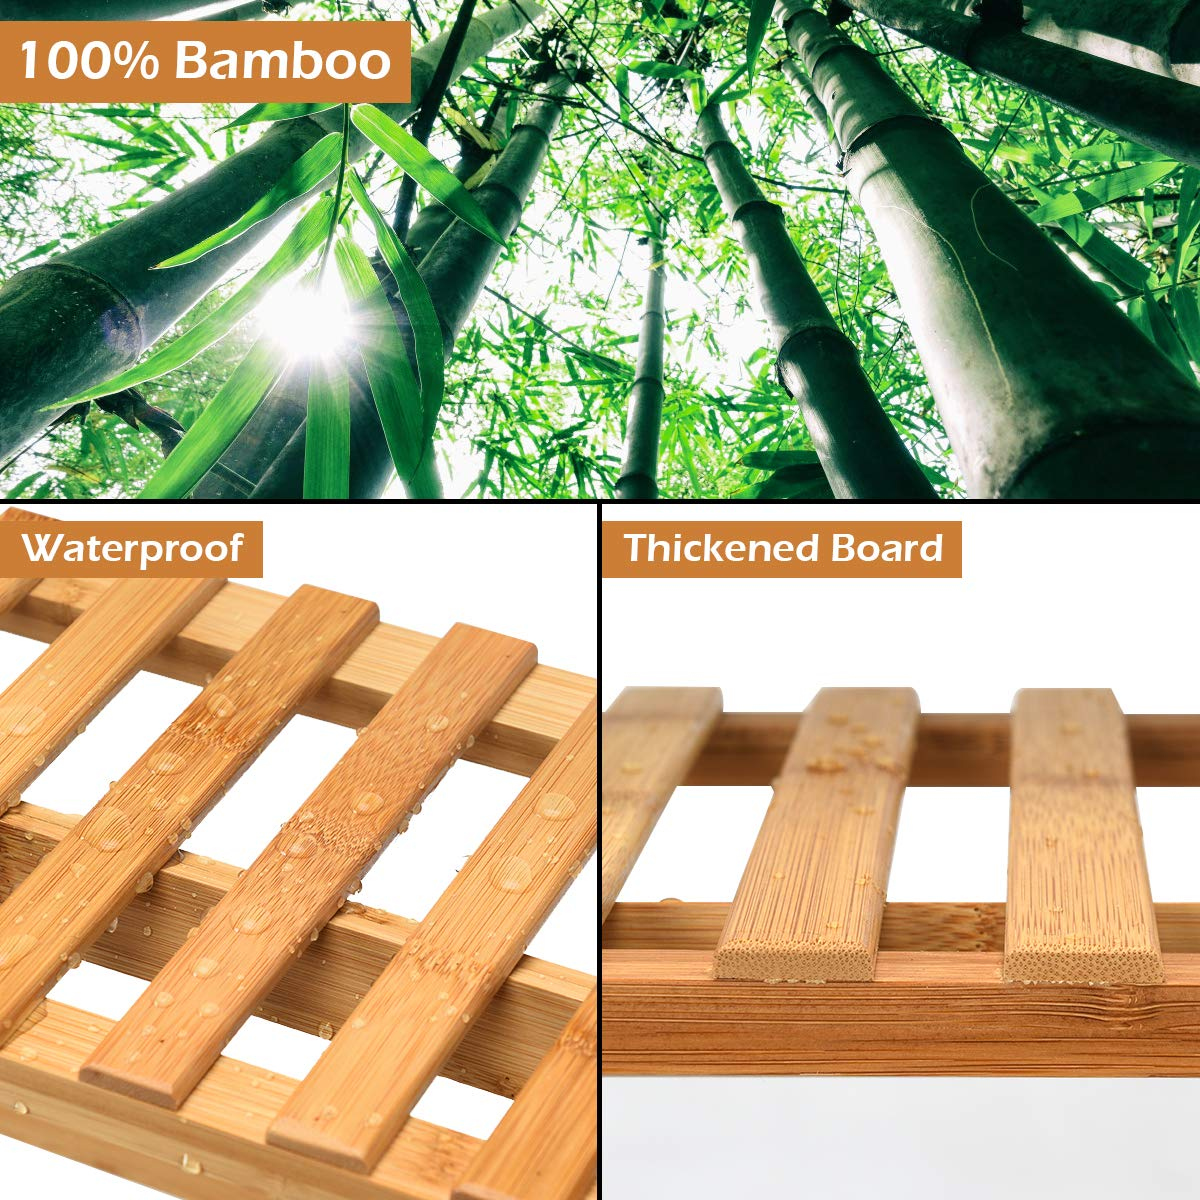 Giantex 3-Tier Bamboo Hanging Plant Stand Foldable Flower Pot Organizer Display Storage Rack Planter Shelves Potted Holder Garden Rack Decorative Stand for Indoor Outdoor Patio Lawn Garden Balcony